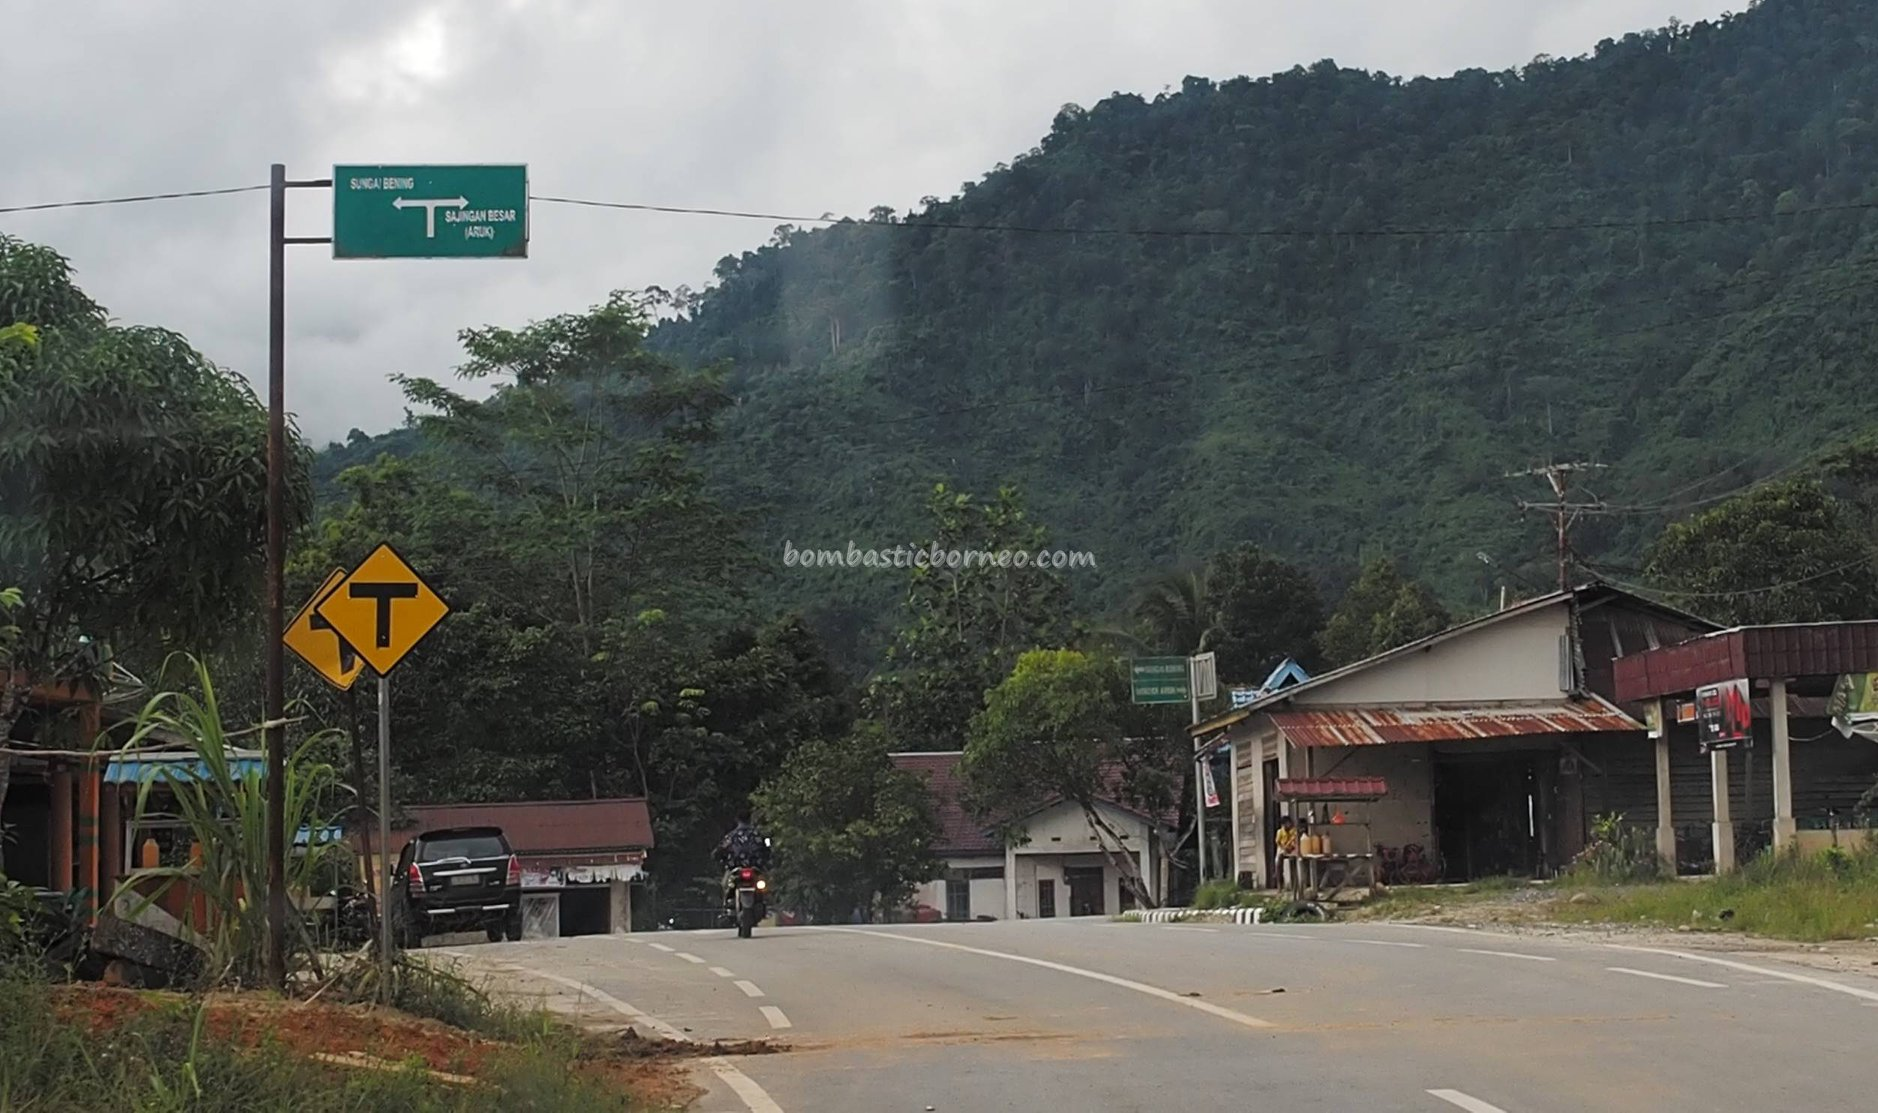 berbatasan, Sungai Bening, Biawak-Aruk Border Post, adventure, Borneo, Indonesia, West Kalimantan, Sajingan Besar, Sambas, Obyek wisata, Tourism, tourist attraction, travel guide, transborder, Trans Kalimantan